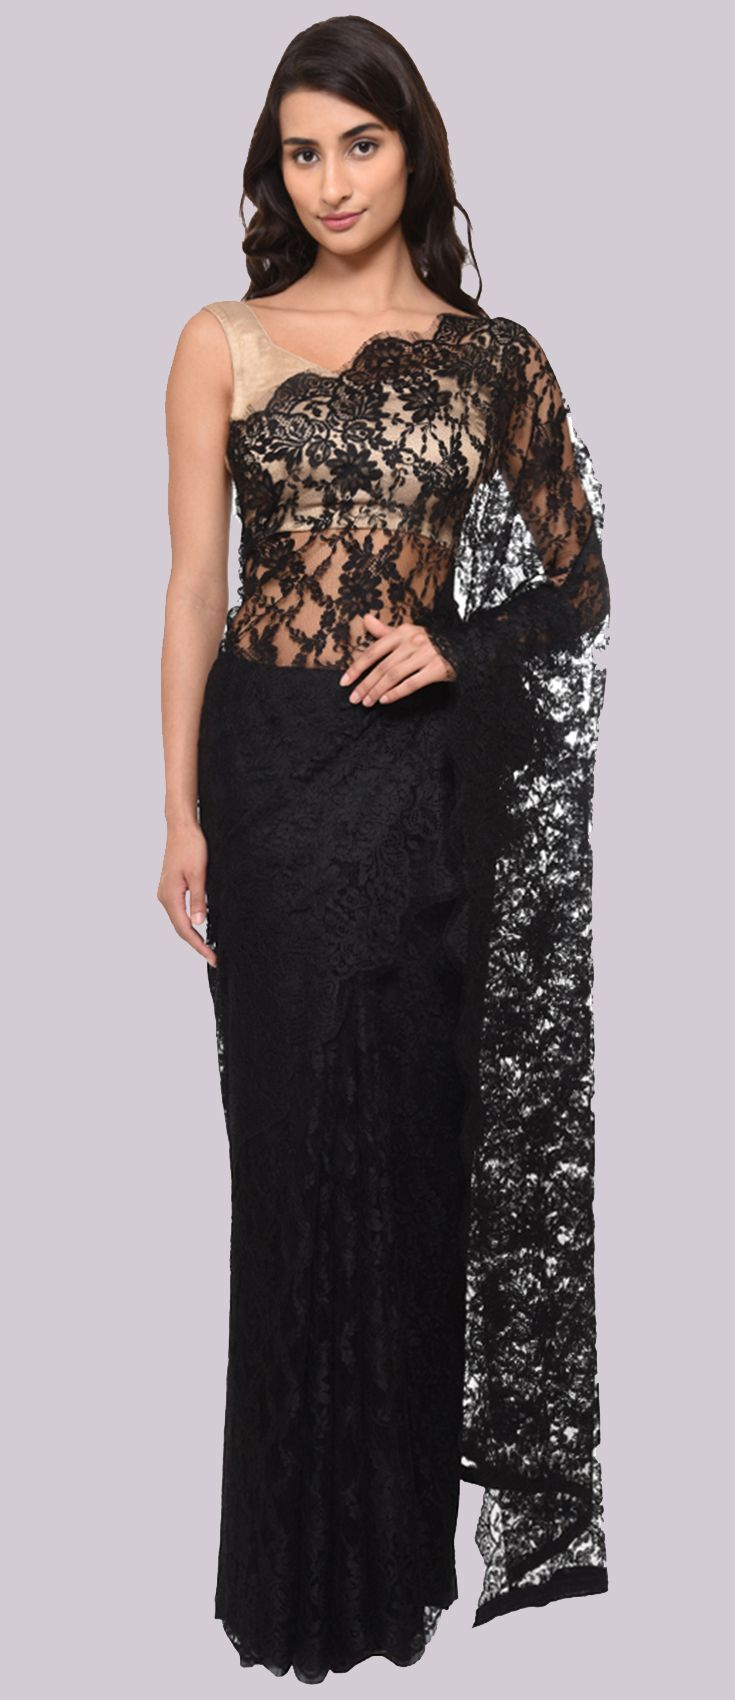 Black French Chantilly Lace Saree With Crepe Tissue Blouse